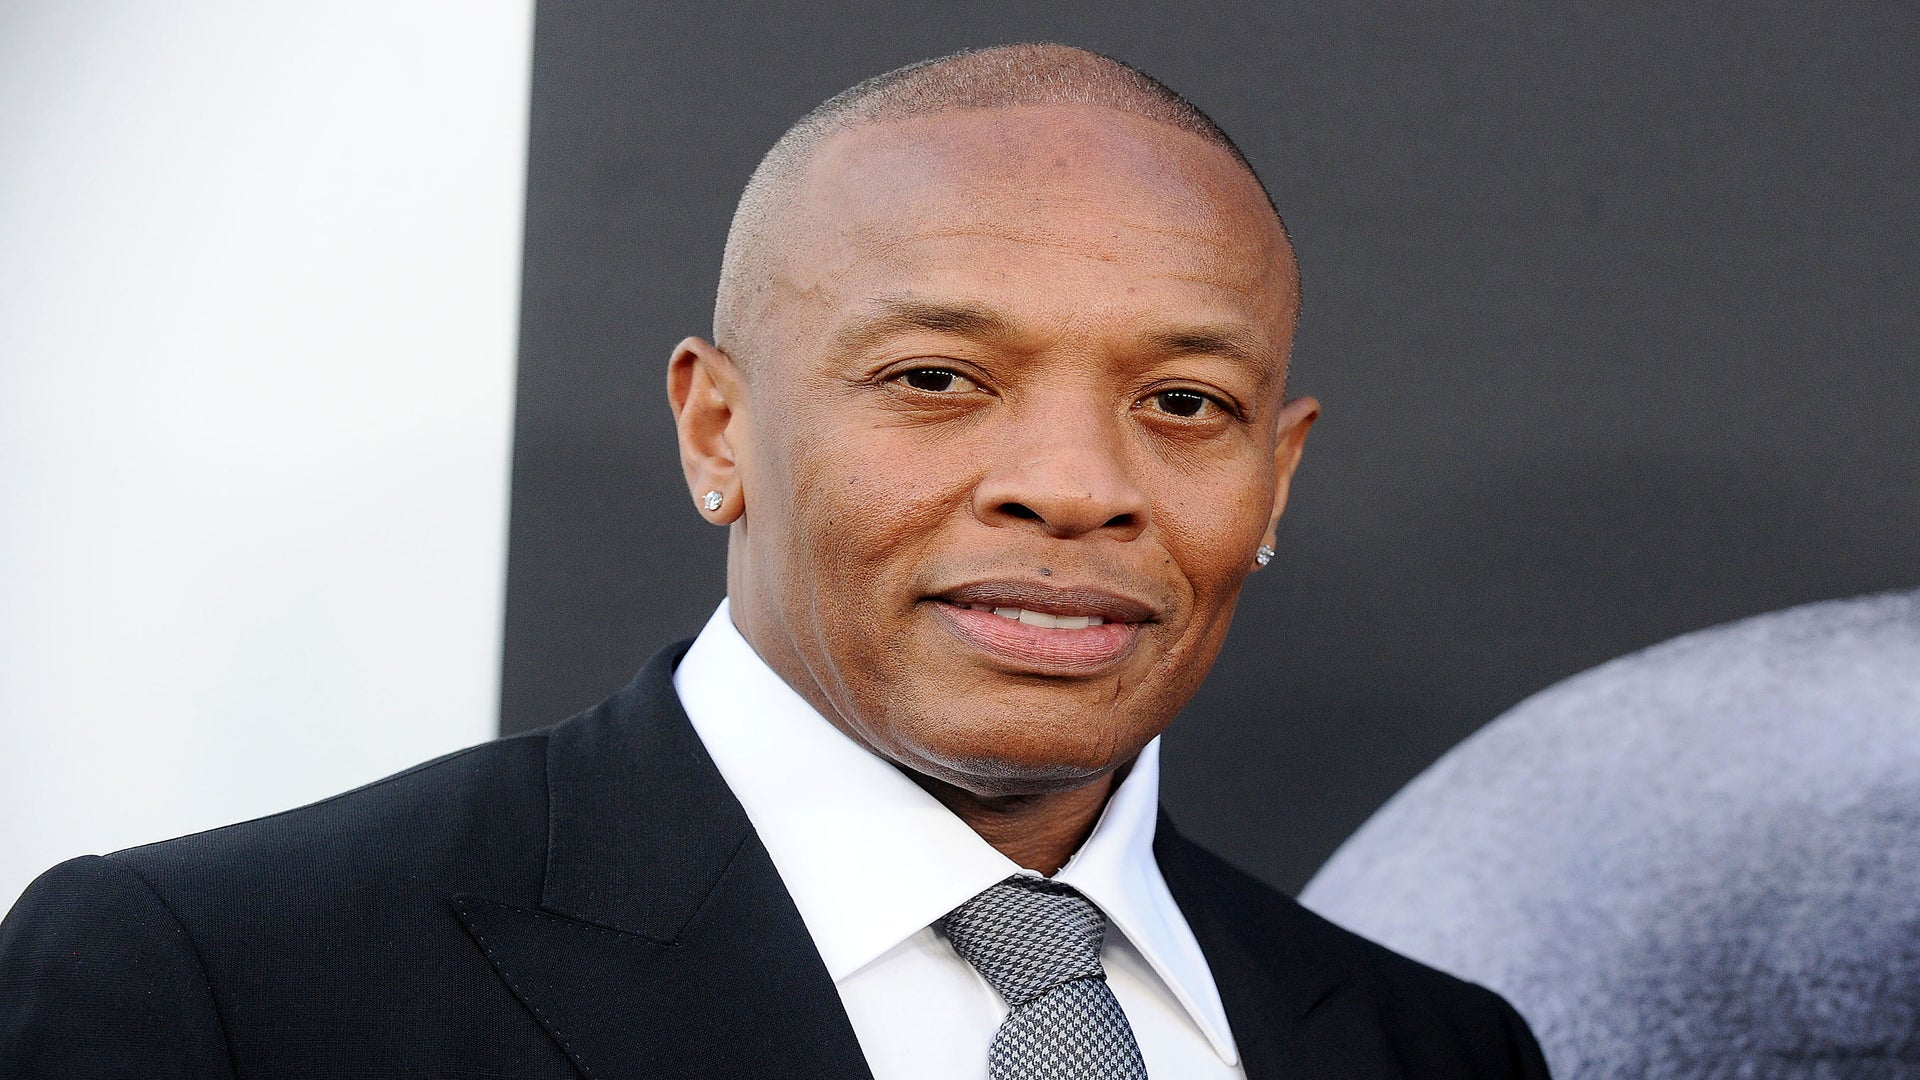 Dr. Dre Apologizes For Dee Barnes Assault: 'Any Man That Puts His Hands On A Female Is A F—ing Idiot'